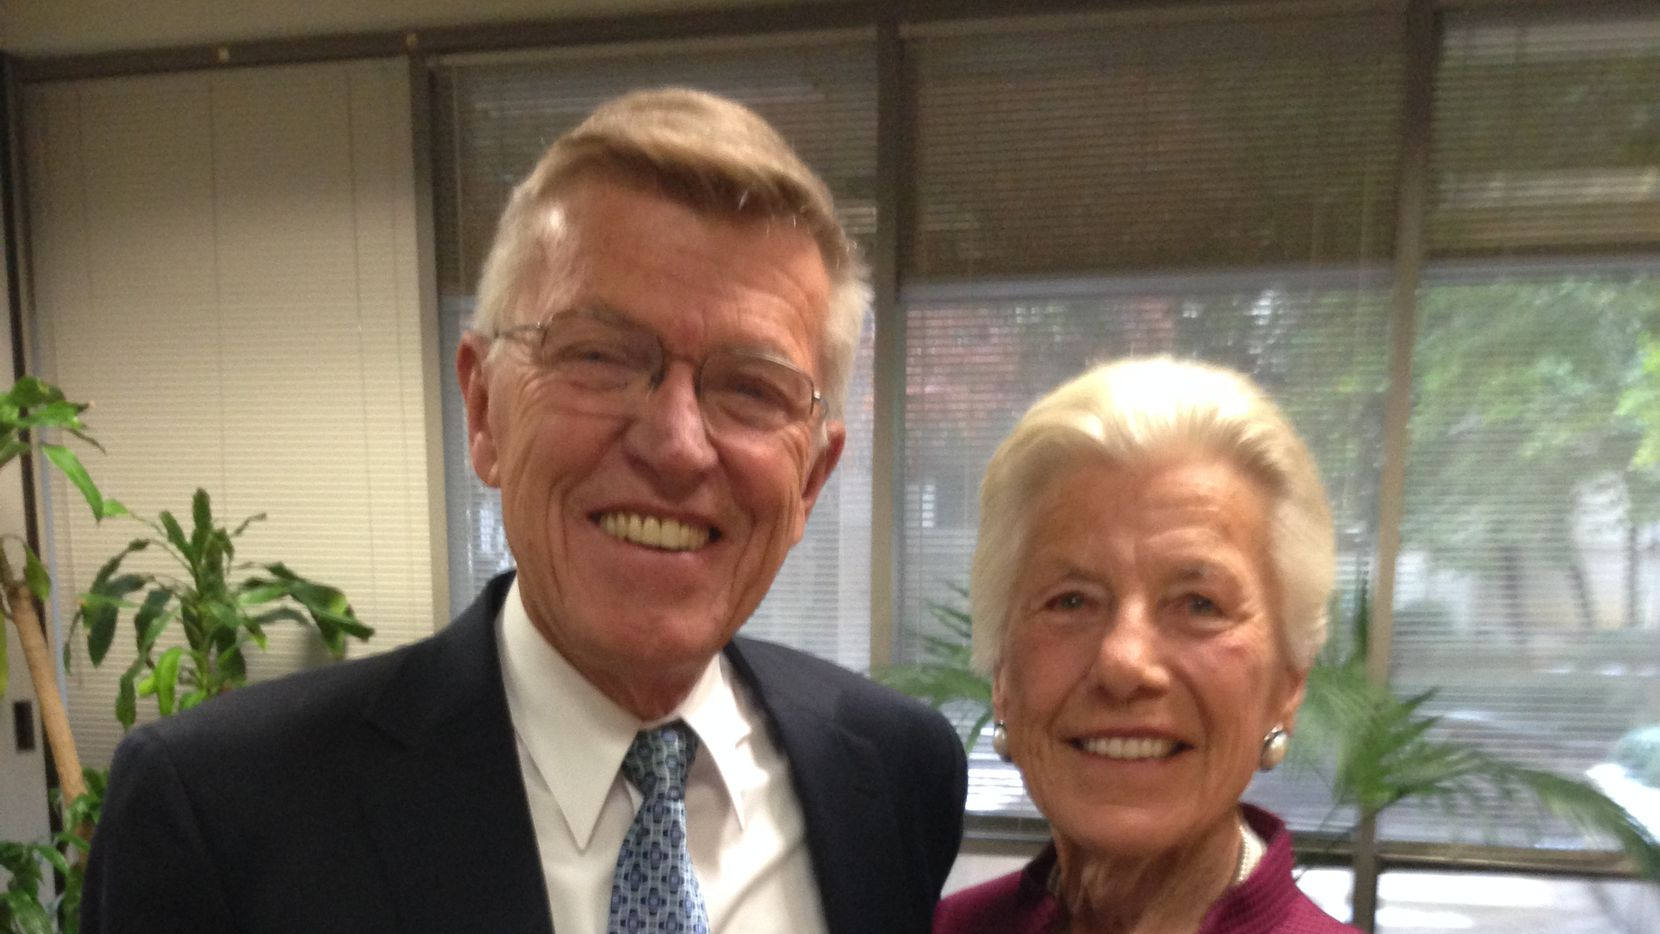 Bob and Jan Crandall on Dec. 9, 2013, the day thatAmerican Airlines and US Airways merged. (Terry Maxon/DMN)